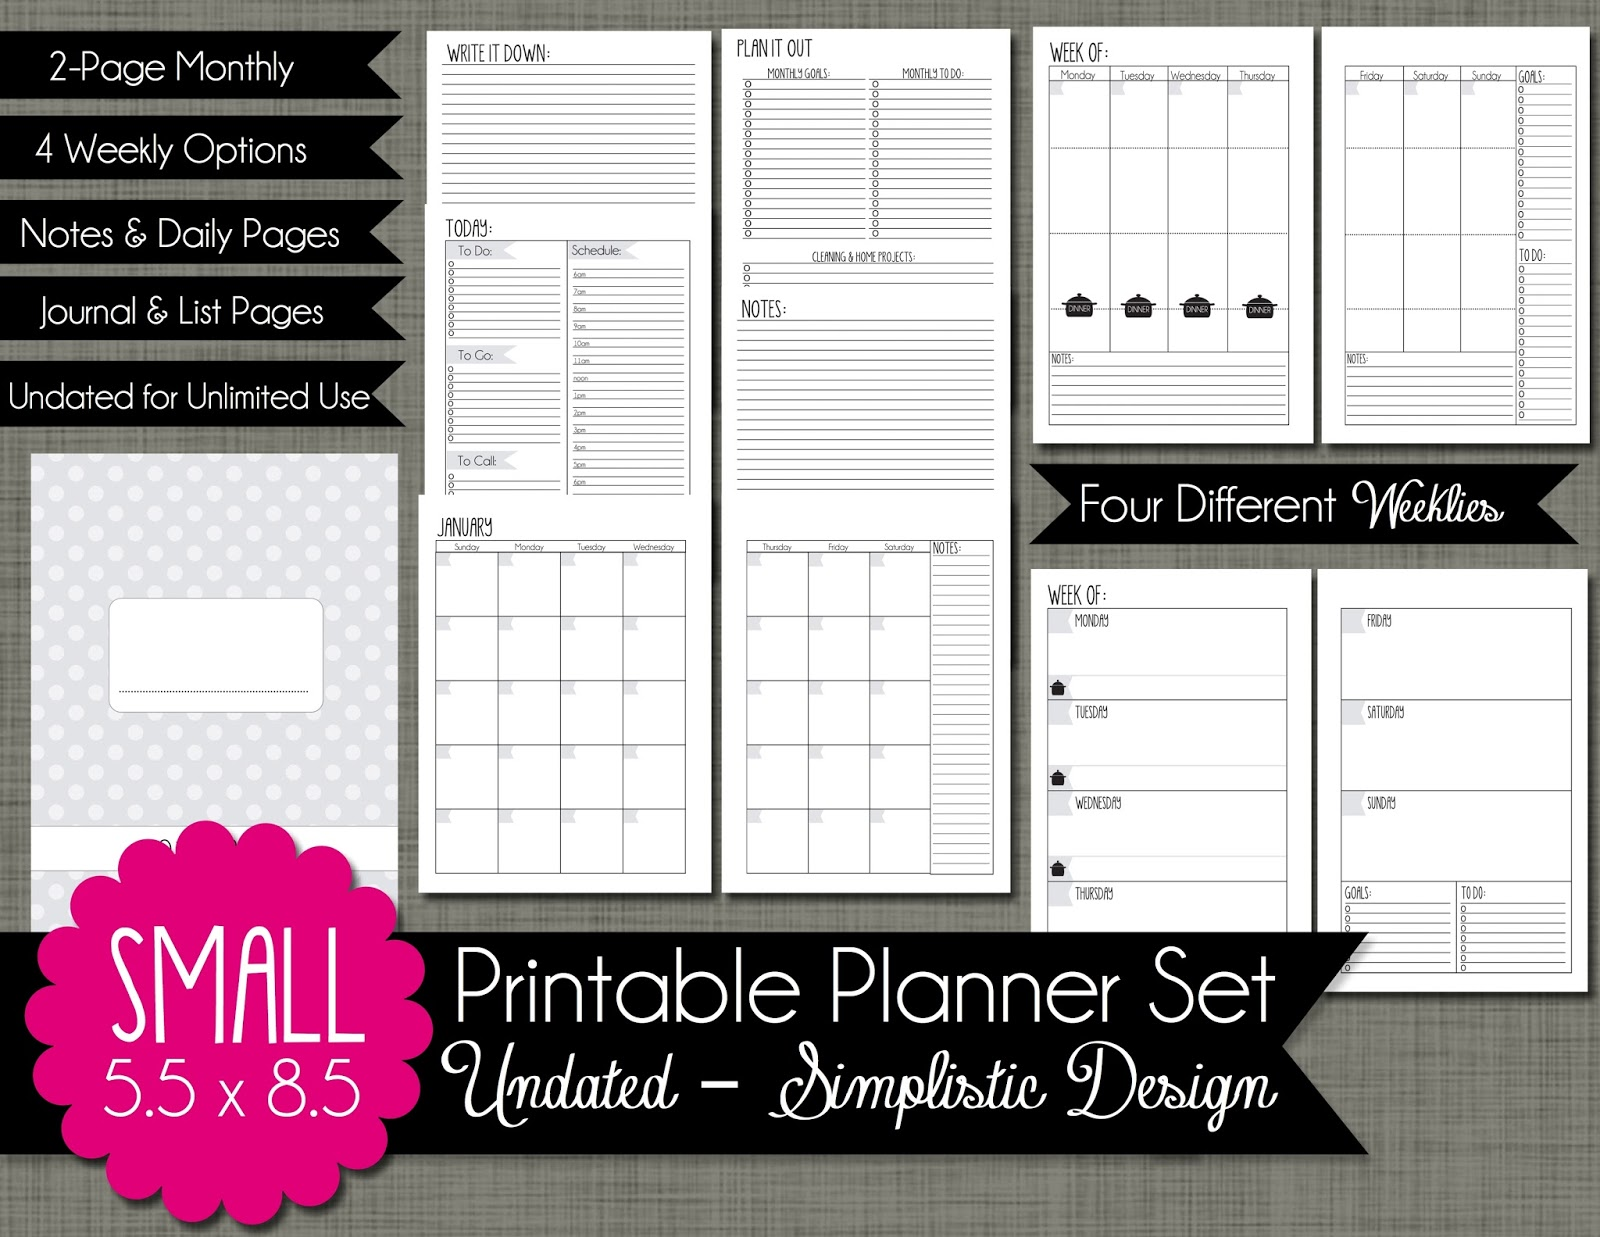 Monthly Work Planner This Planner Works Just Like